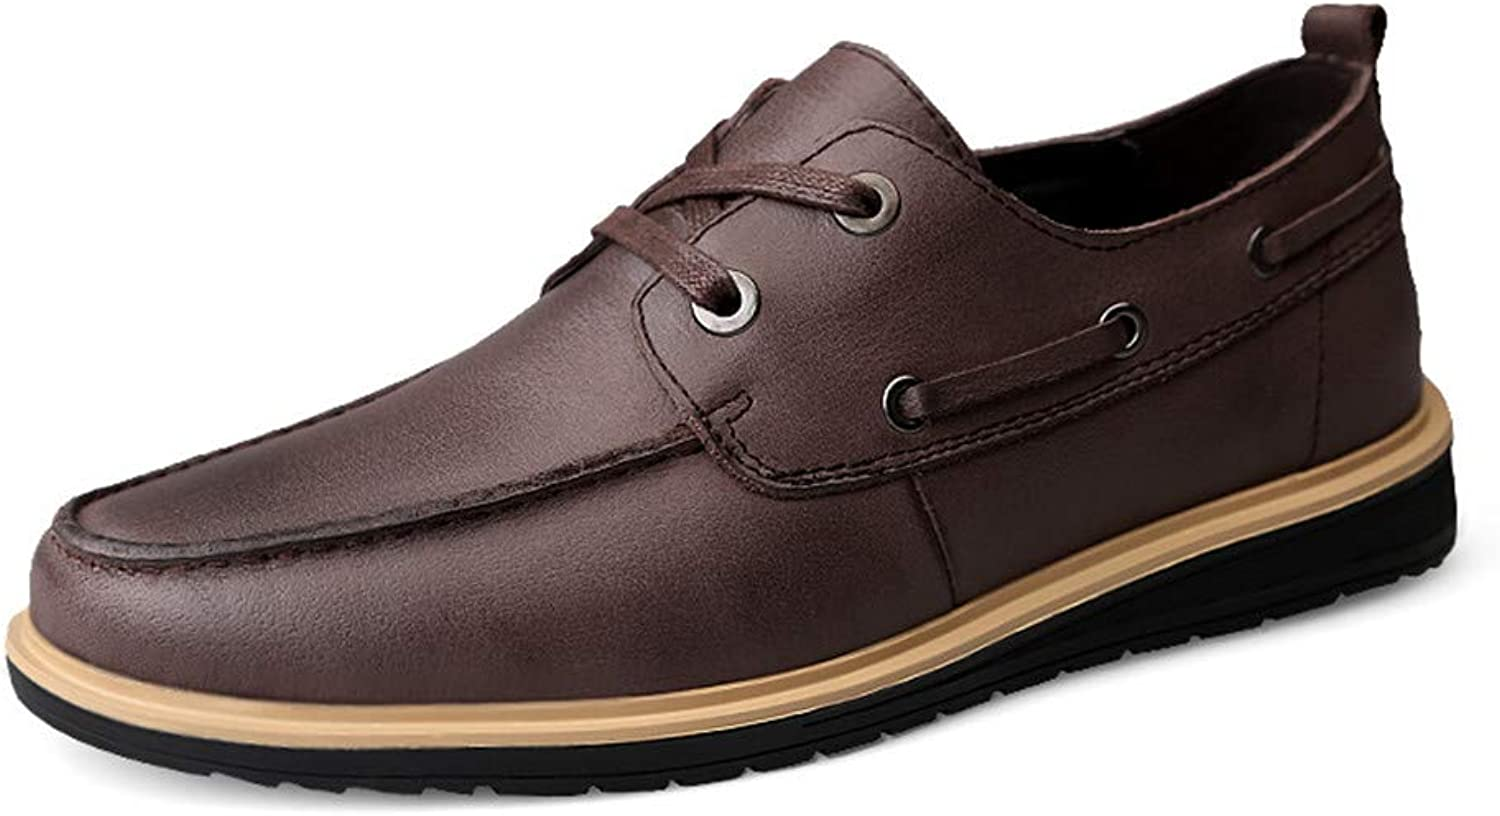 SRY-shoes Men's Simple Fashion Oxford Casual Personality Light and Comfortable Round Toe Formal shoes